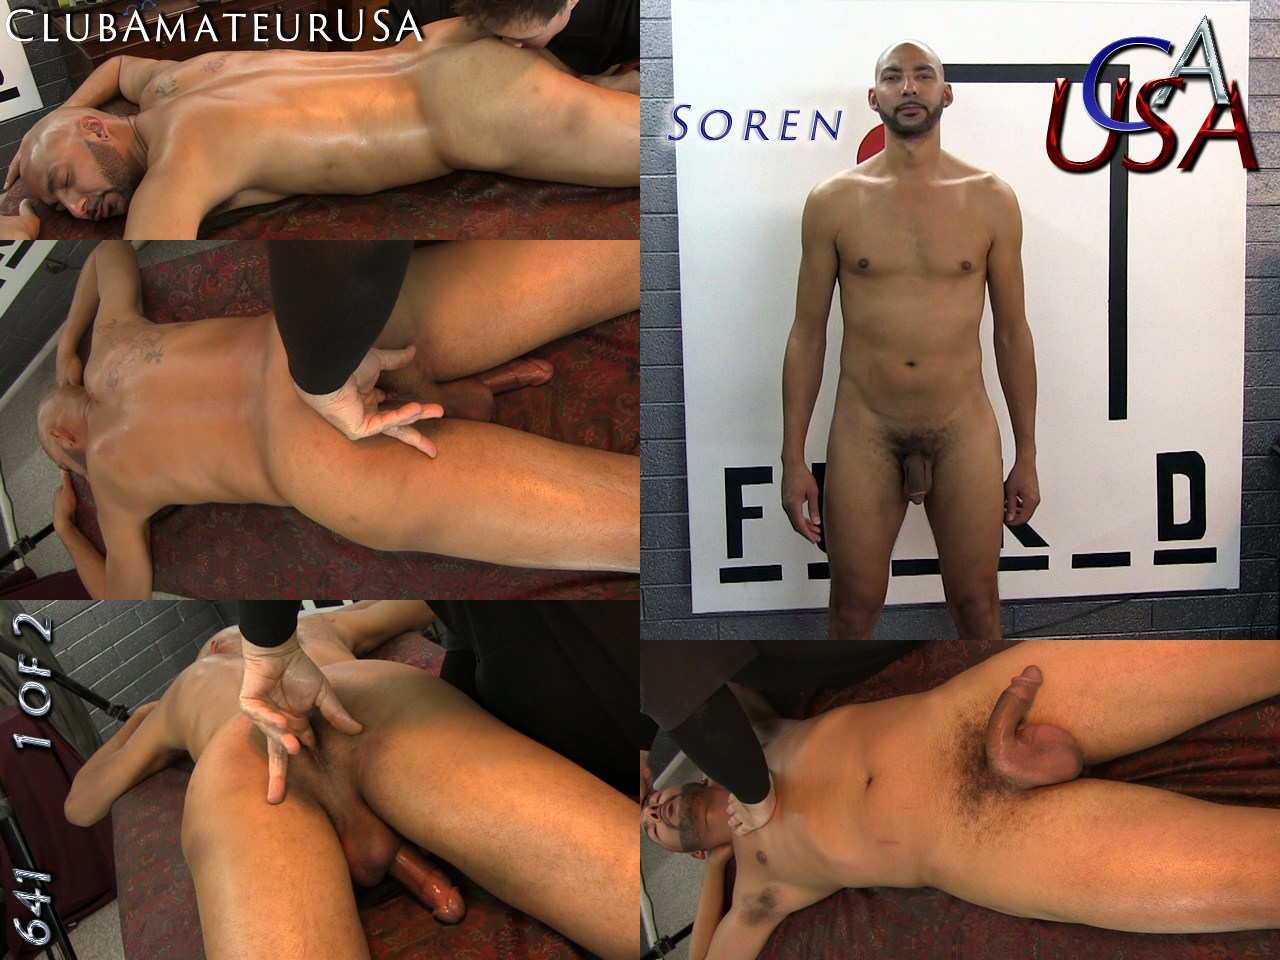 Download or Stream CAUSA 641 Soren - 1 of 2 - Click Here Now